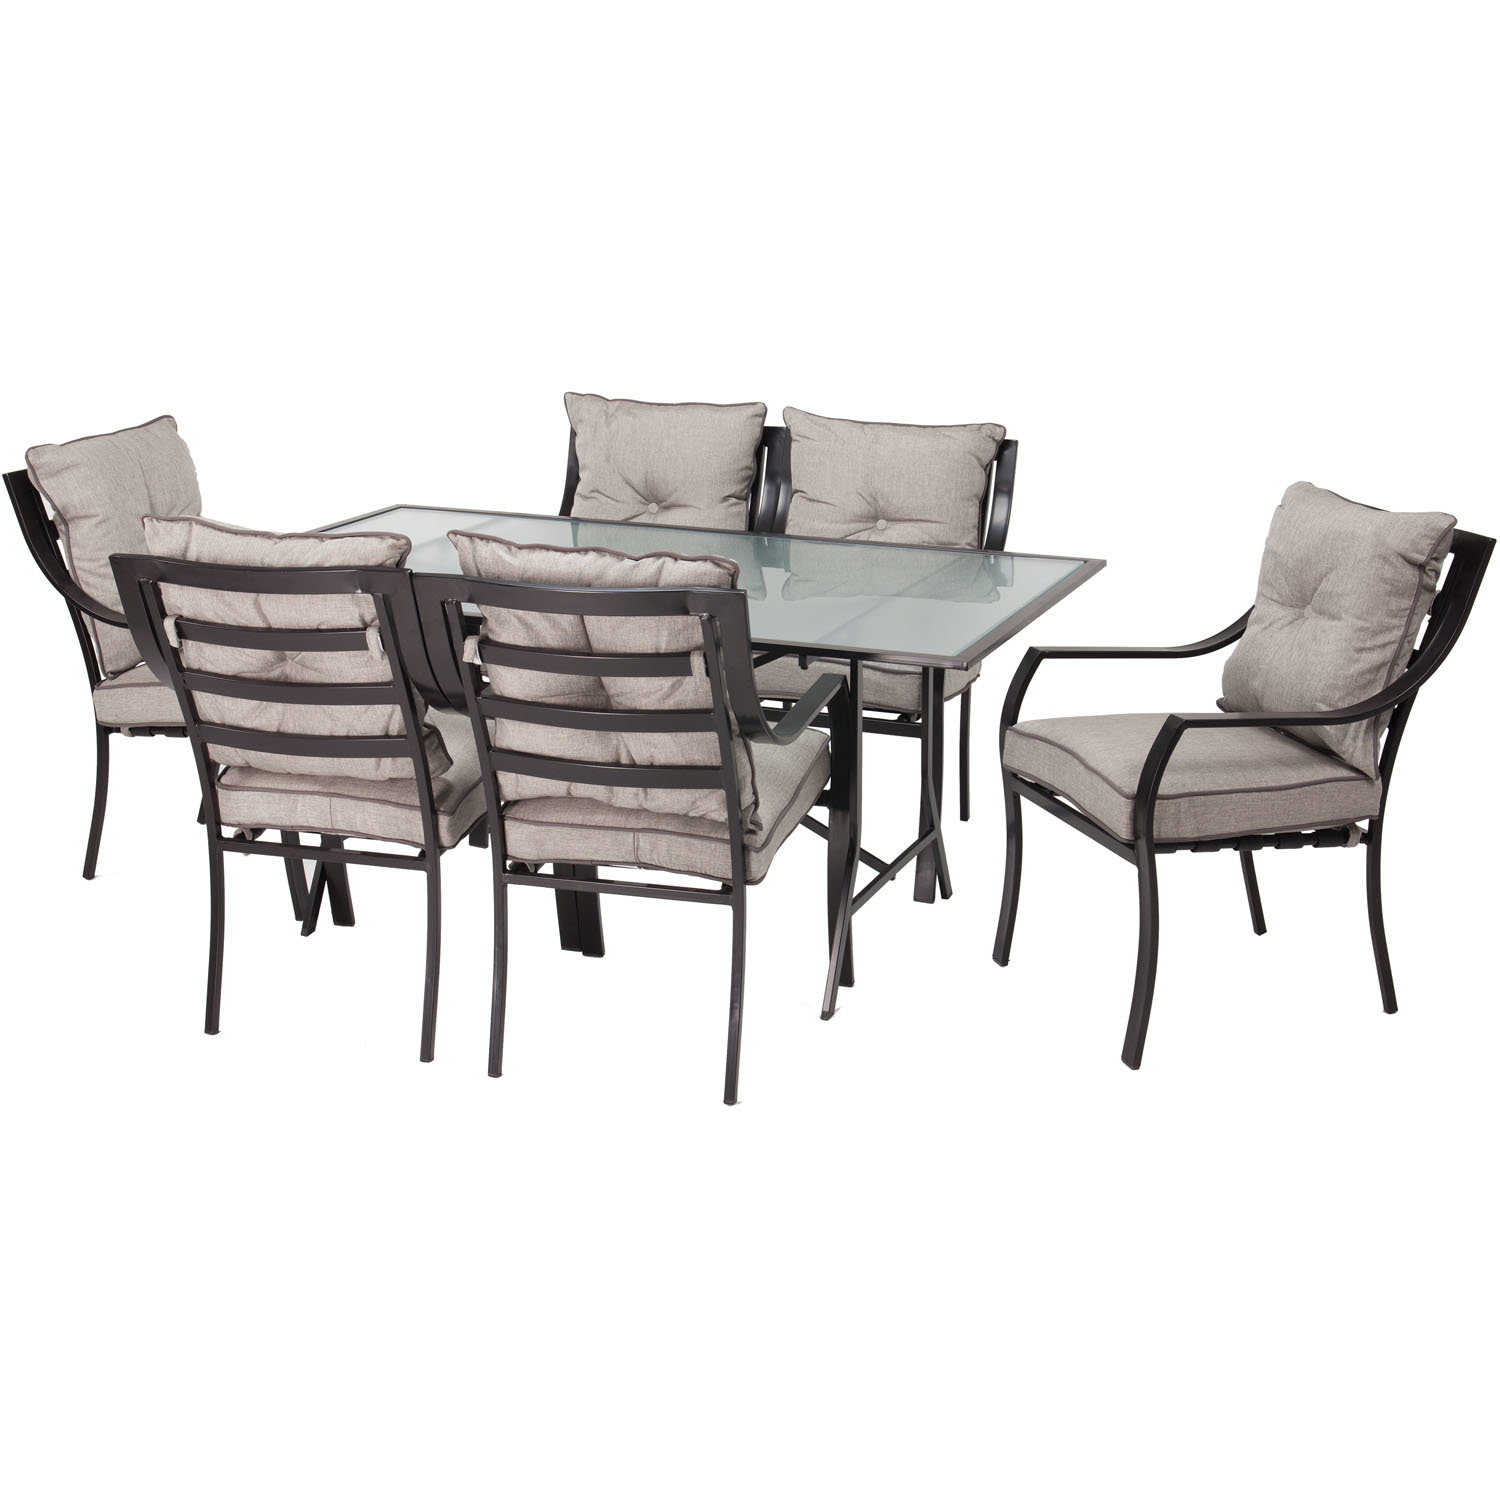 Darby Home Co Bozarth 7 Piece Dining Set With Cushion With Regard To Newest Miskell 3 Piece Dining Sets (Photo 19 of 20)